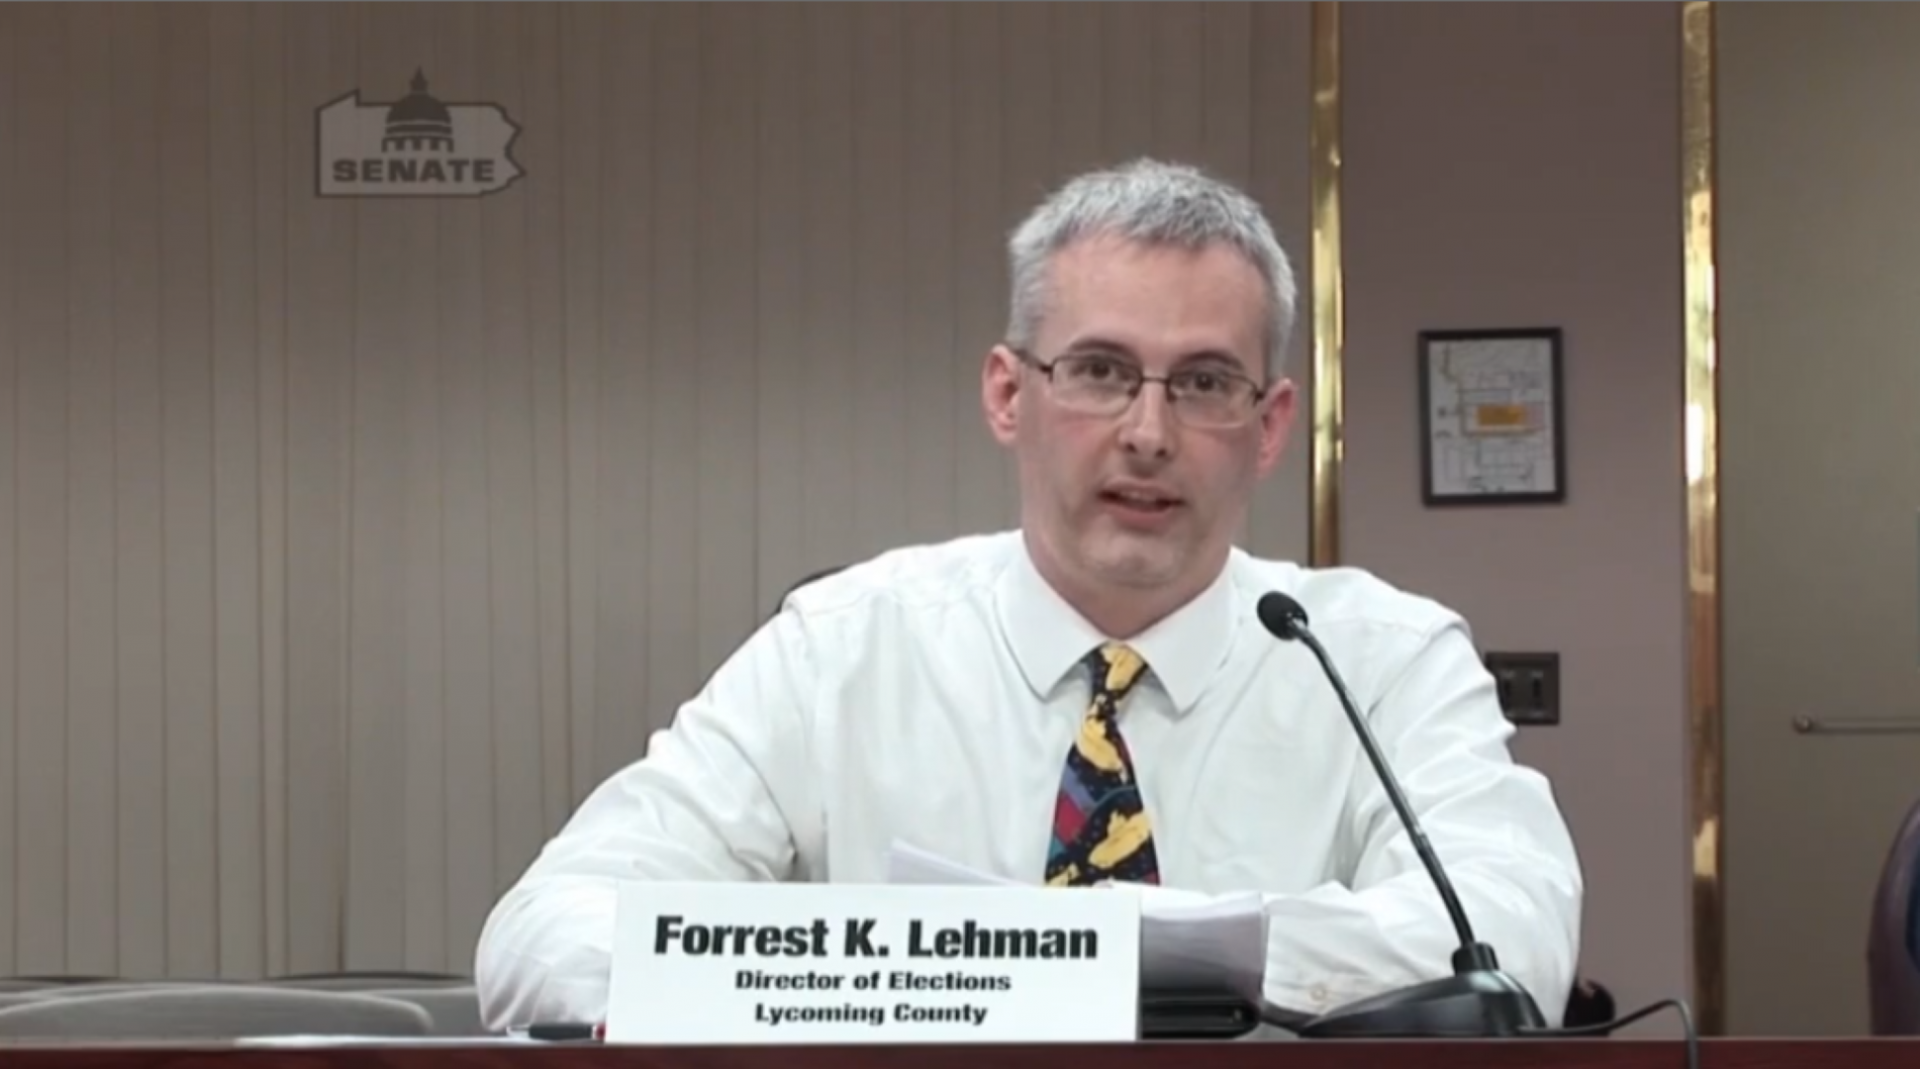 Lycoming County Director of Elections Forrest Lehman testifies before the Pennsylvania Senate Majority Policy Committee Jan. 27, 2020.